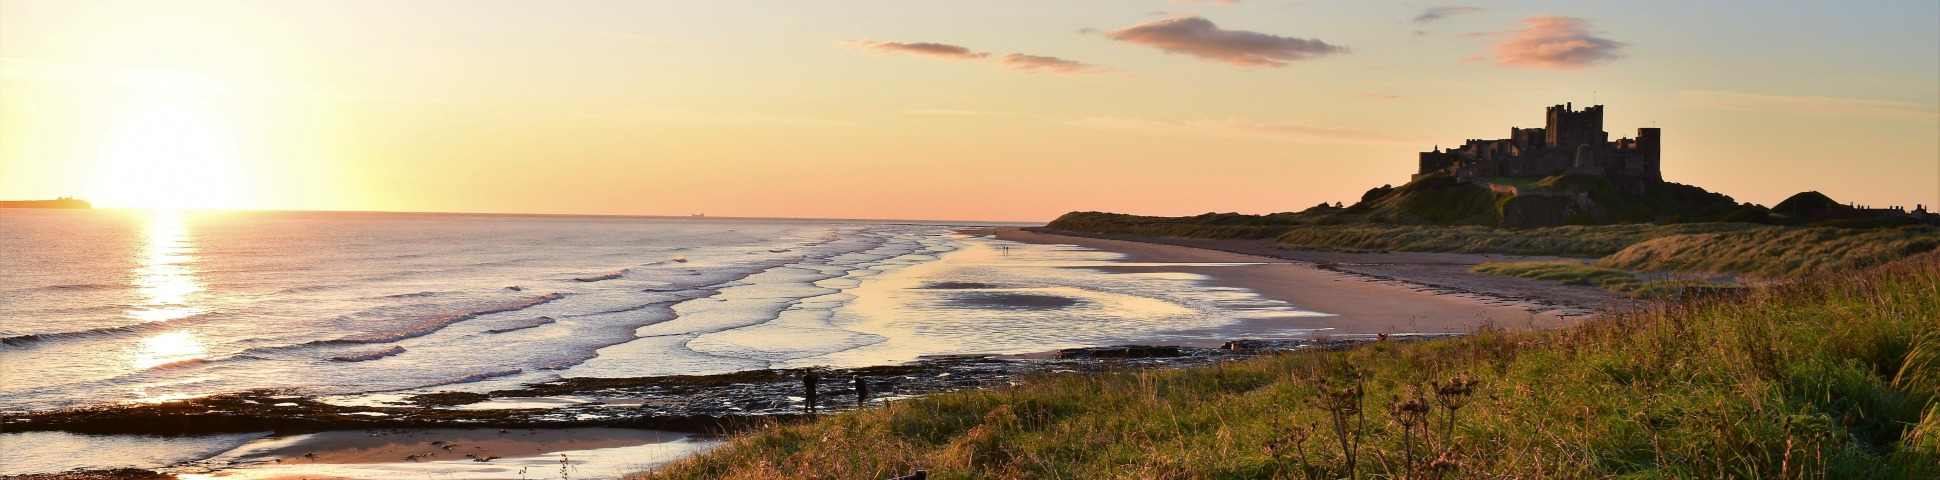 castle in northumberland on the coast with two people on the beach below